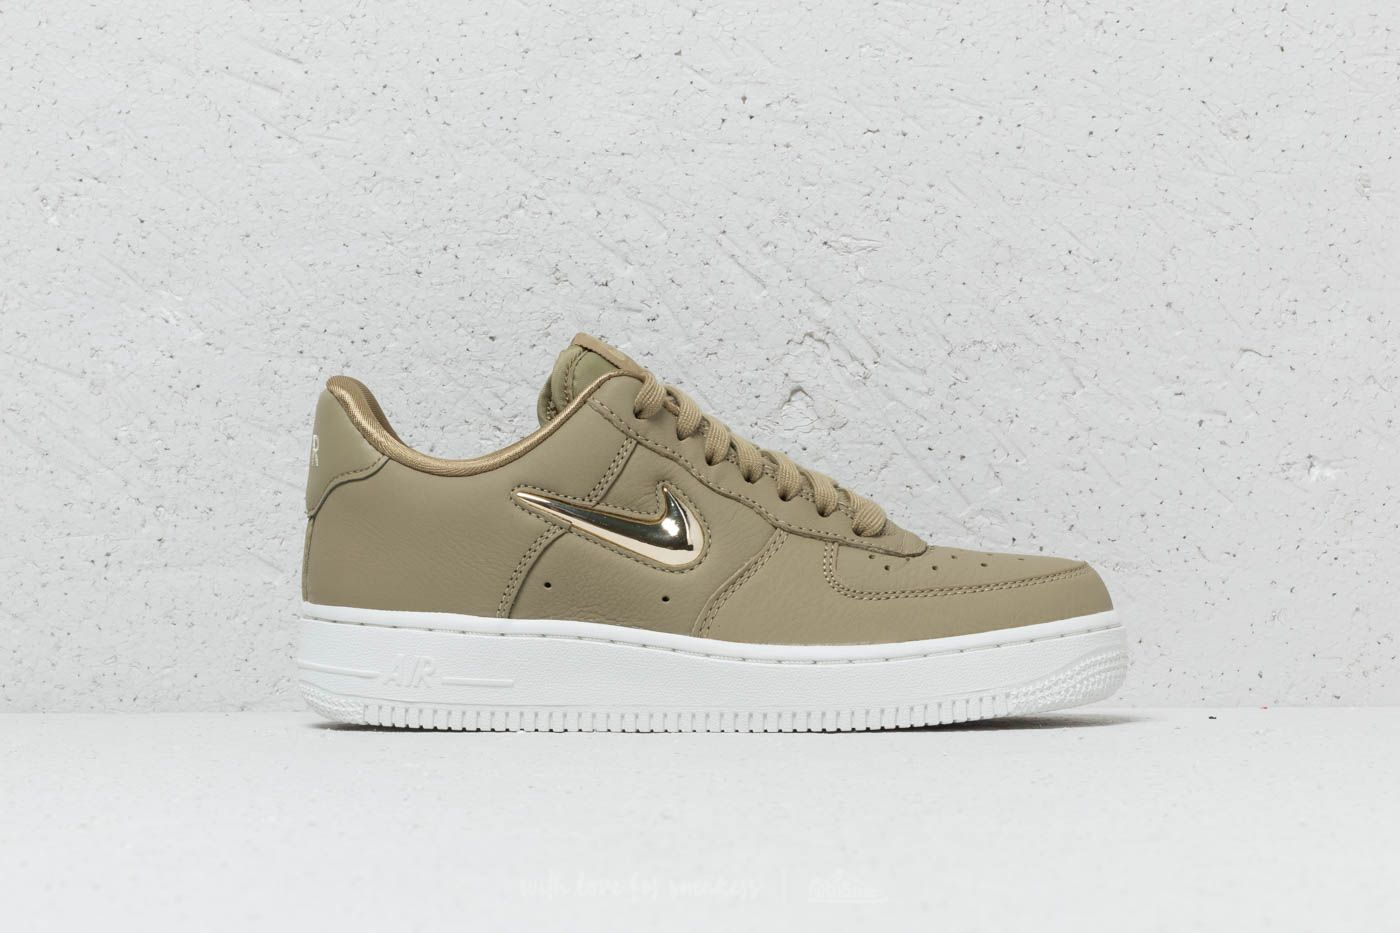 reputable site 7a7e3 81e7c Nike Wmns Air Force 1  07 Premium LX Neutral Olive  Metallic Gold Star at